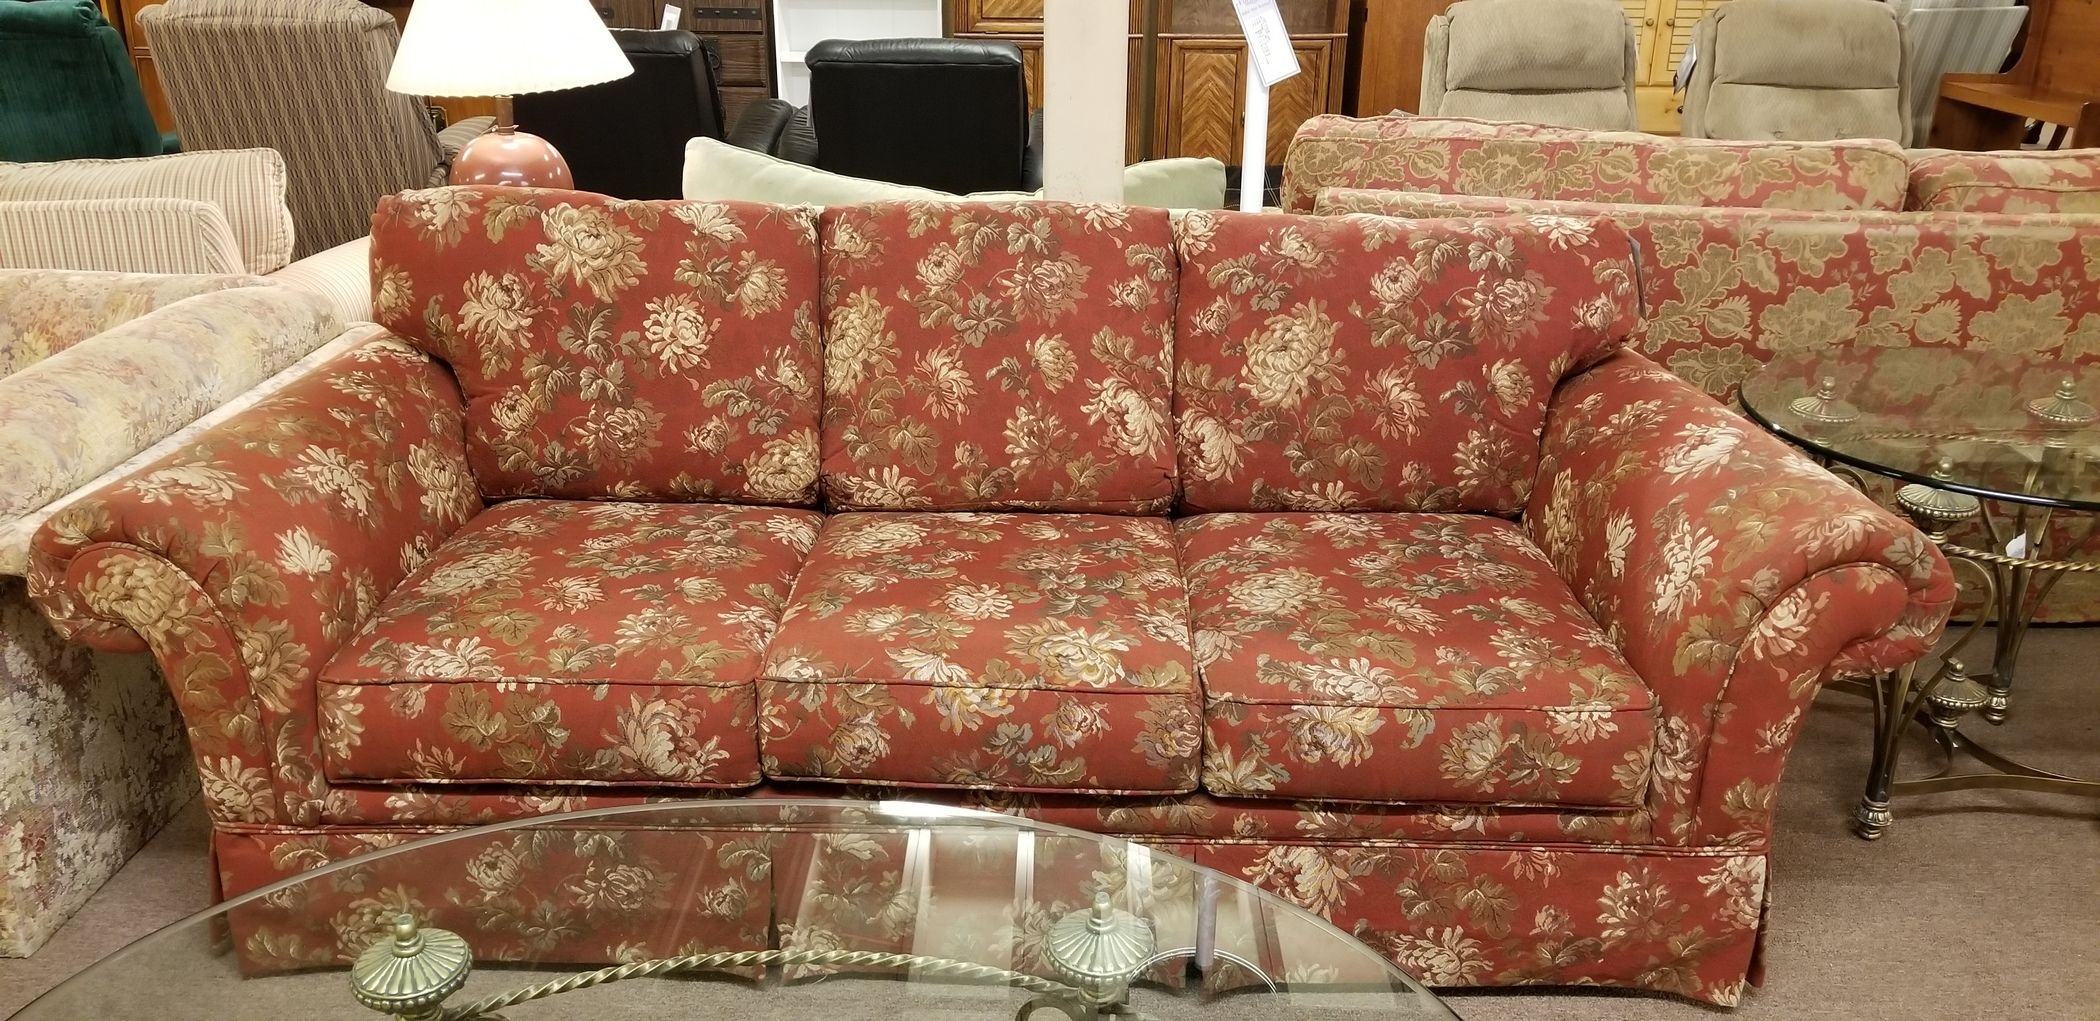 Awesome Red Broyhill Sofa Delmarva Furniture Consignment Dailytribune Chair Design For Home Dailytribuneorg